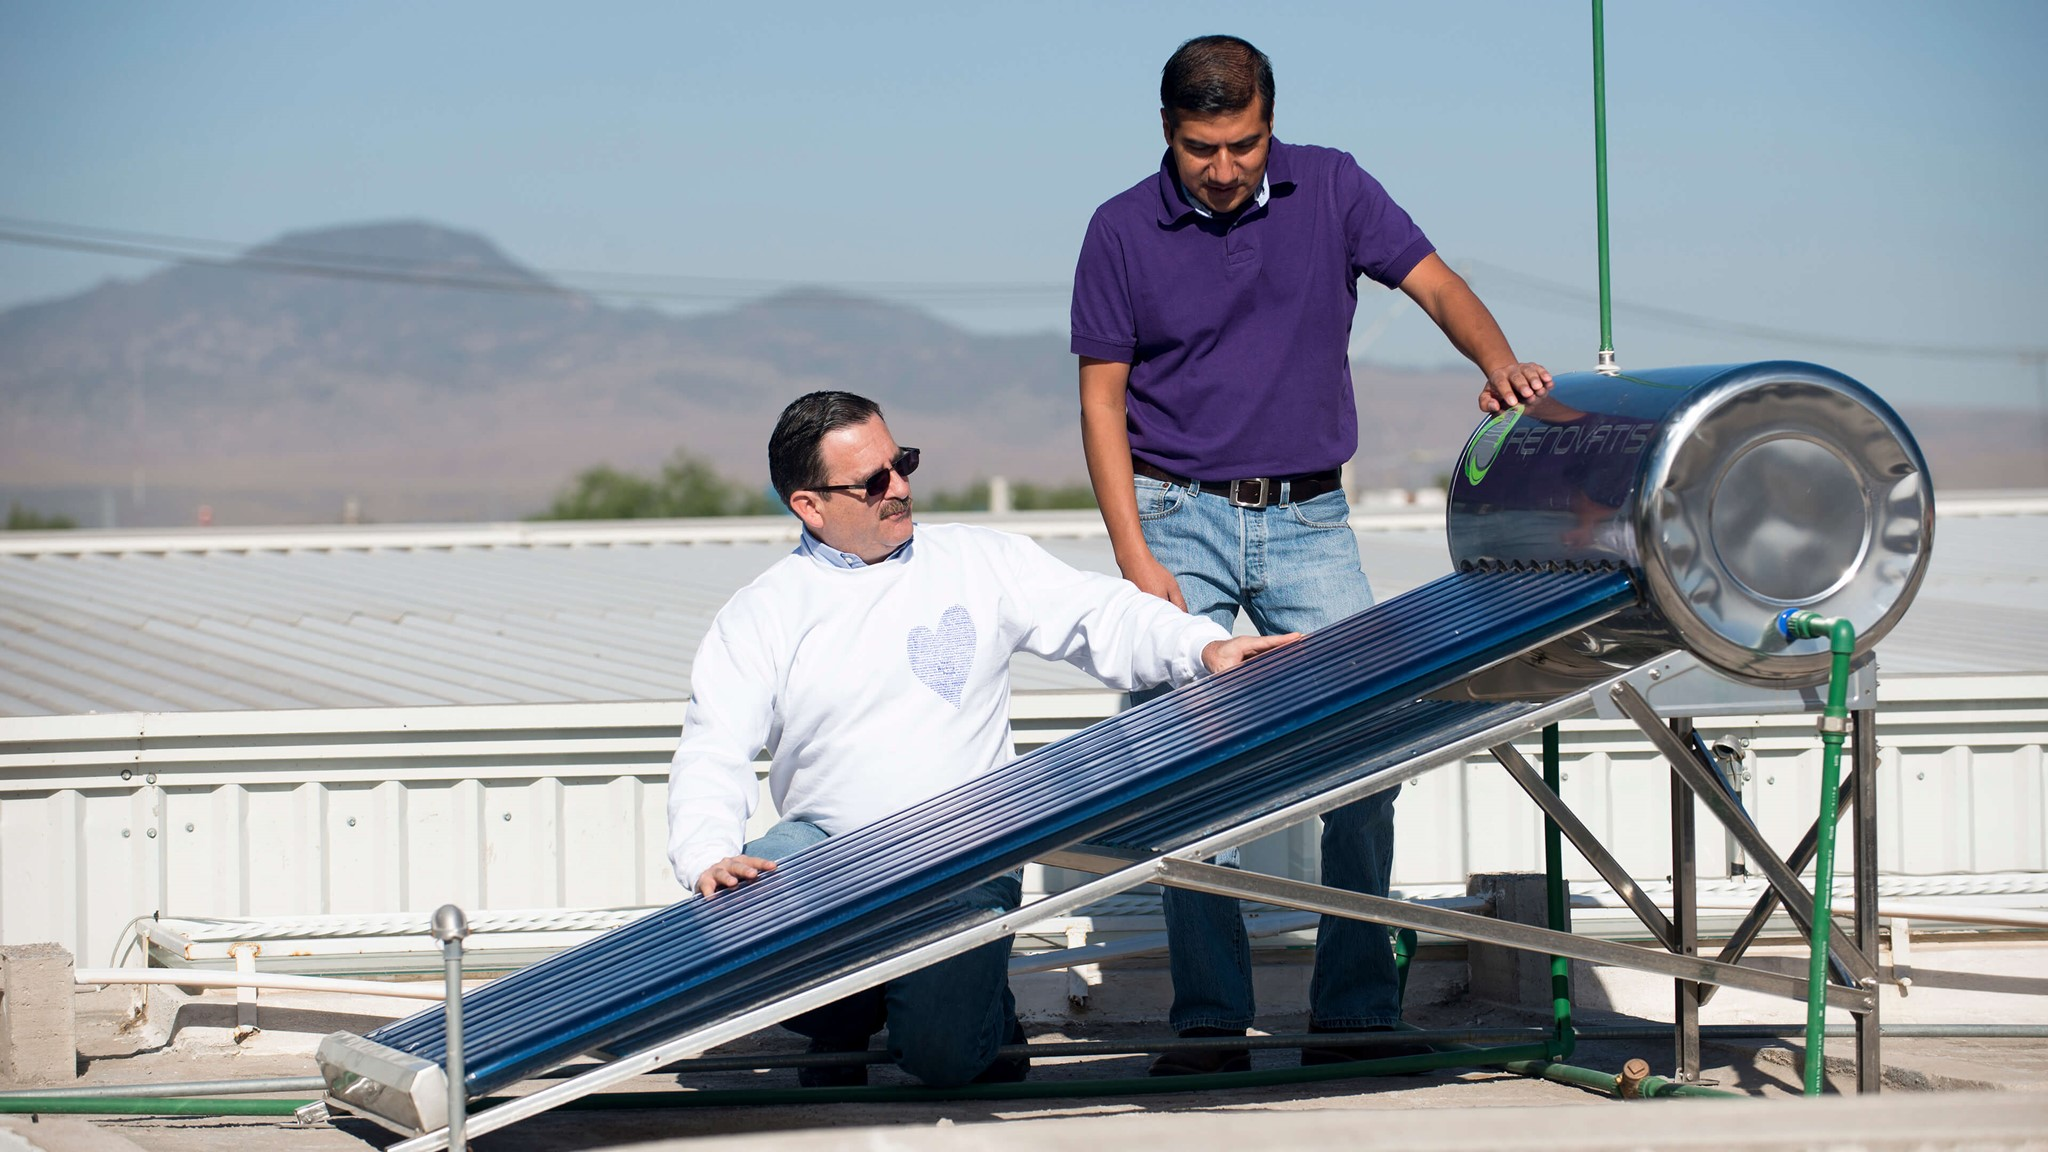 Palsgaard Mexico Has Installed Solar Powered Water Heaters In The Home Of Its Employees